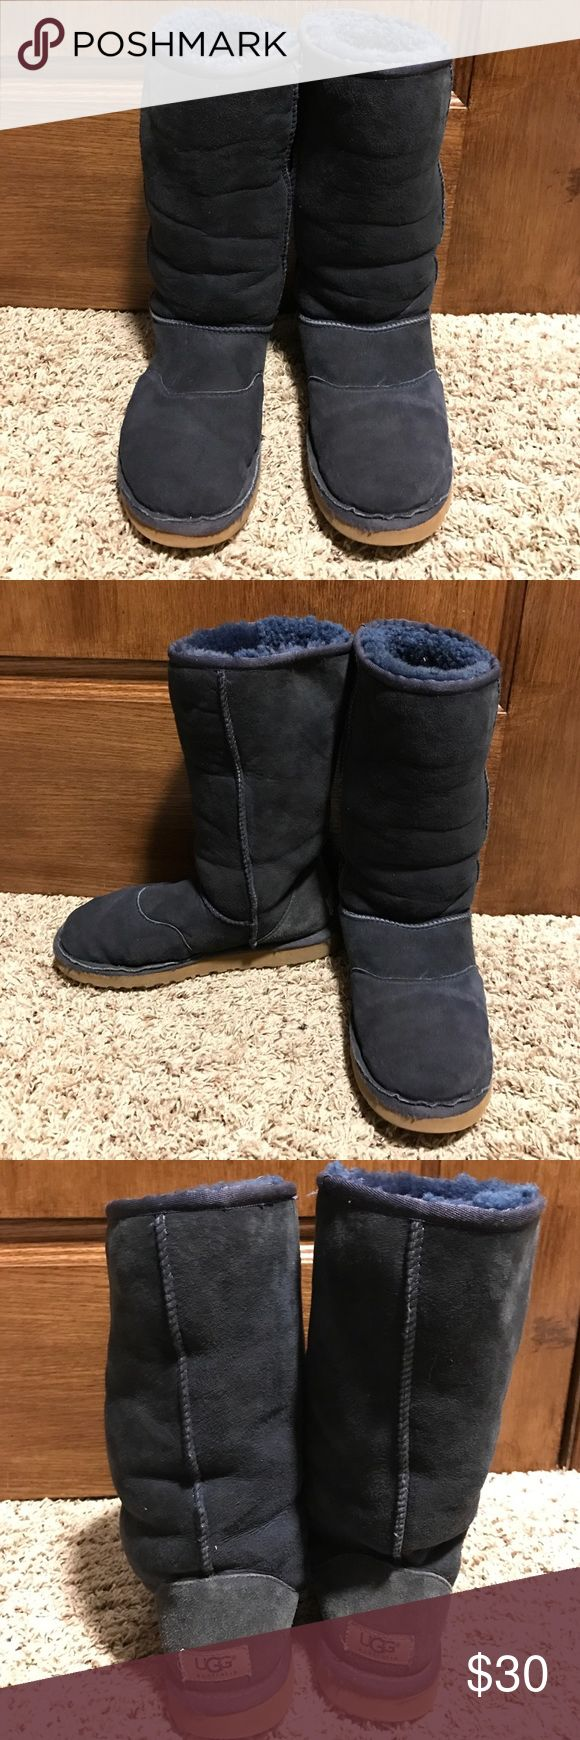 Navy Blue Uggs Super comfy and unique uggs! UGG Shoes Winter & Rain Boots